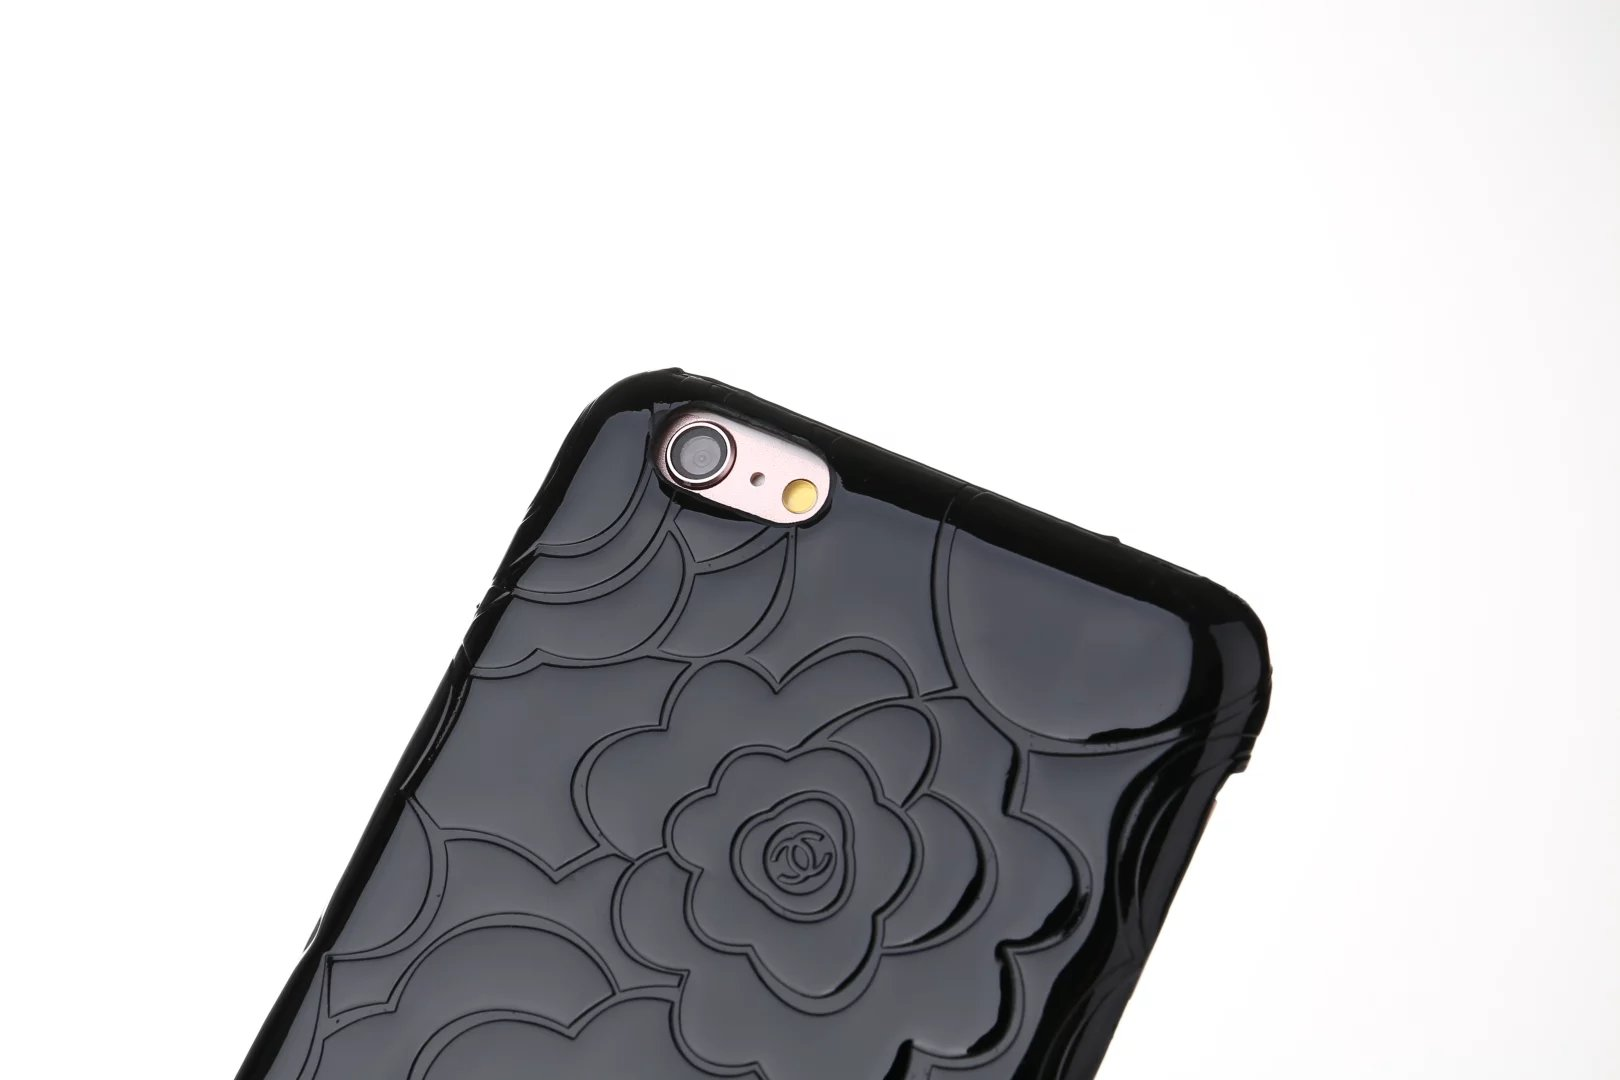 iphone 8 case best case iphone 8 Chanel iphone 8 case accessory case iphone 8 mophie juice pack cheap iphone 8 phone cases cover of iphone iphone 8 popular cases wristlet iphone case